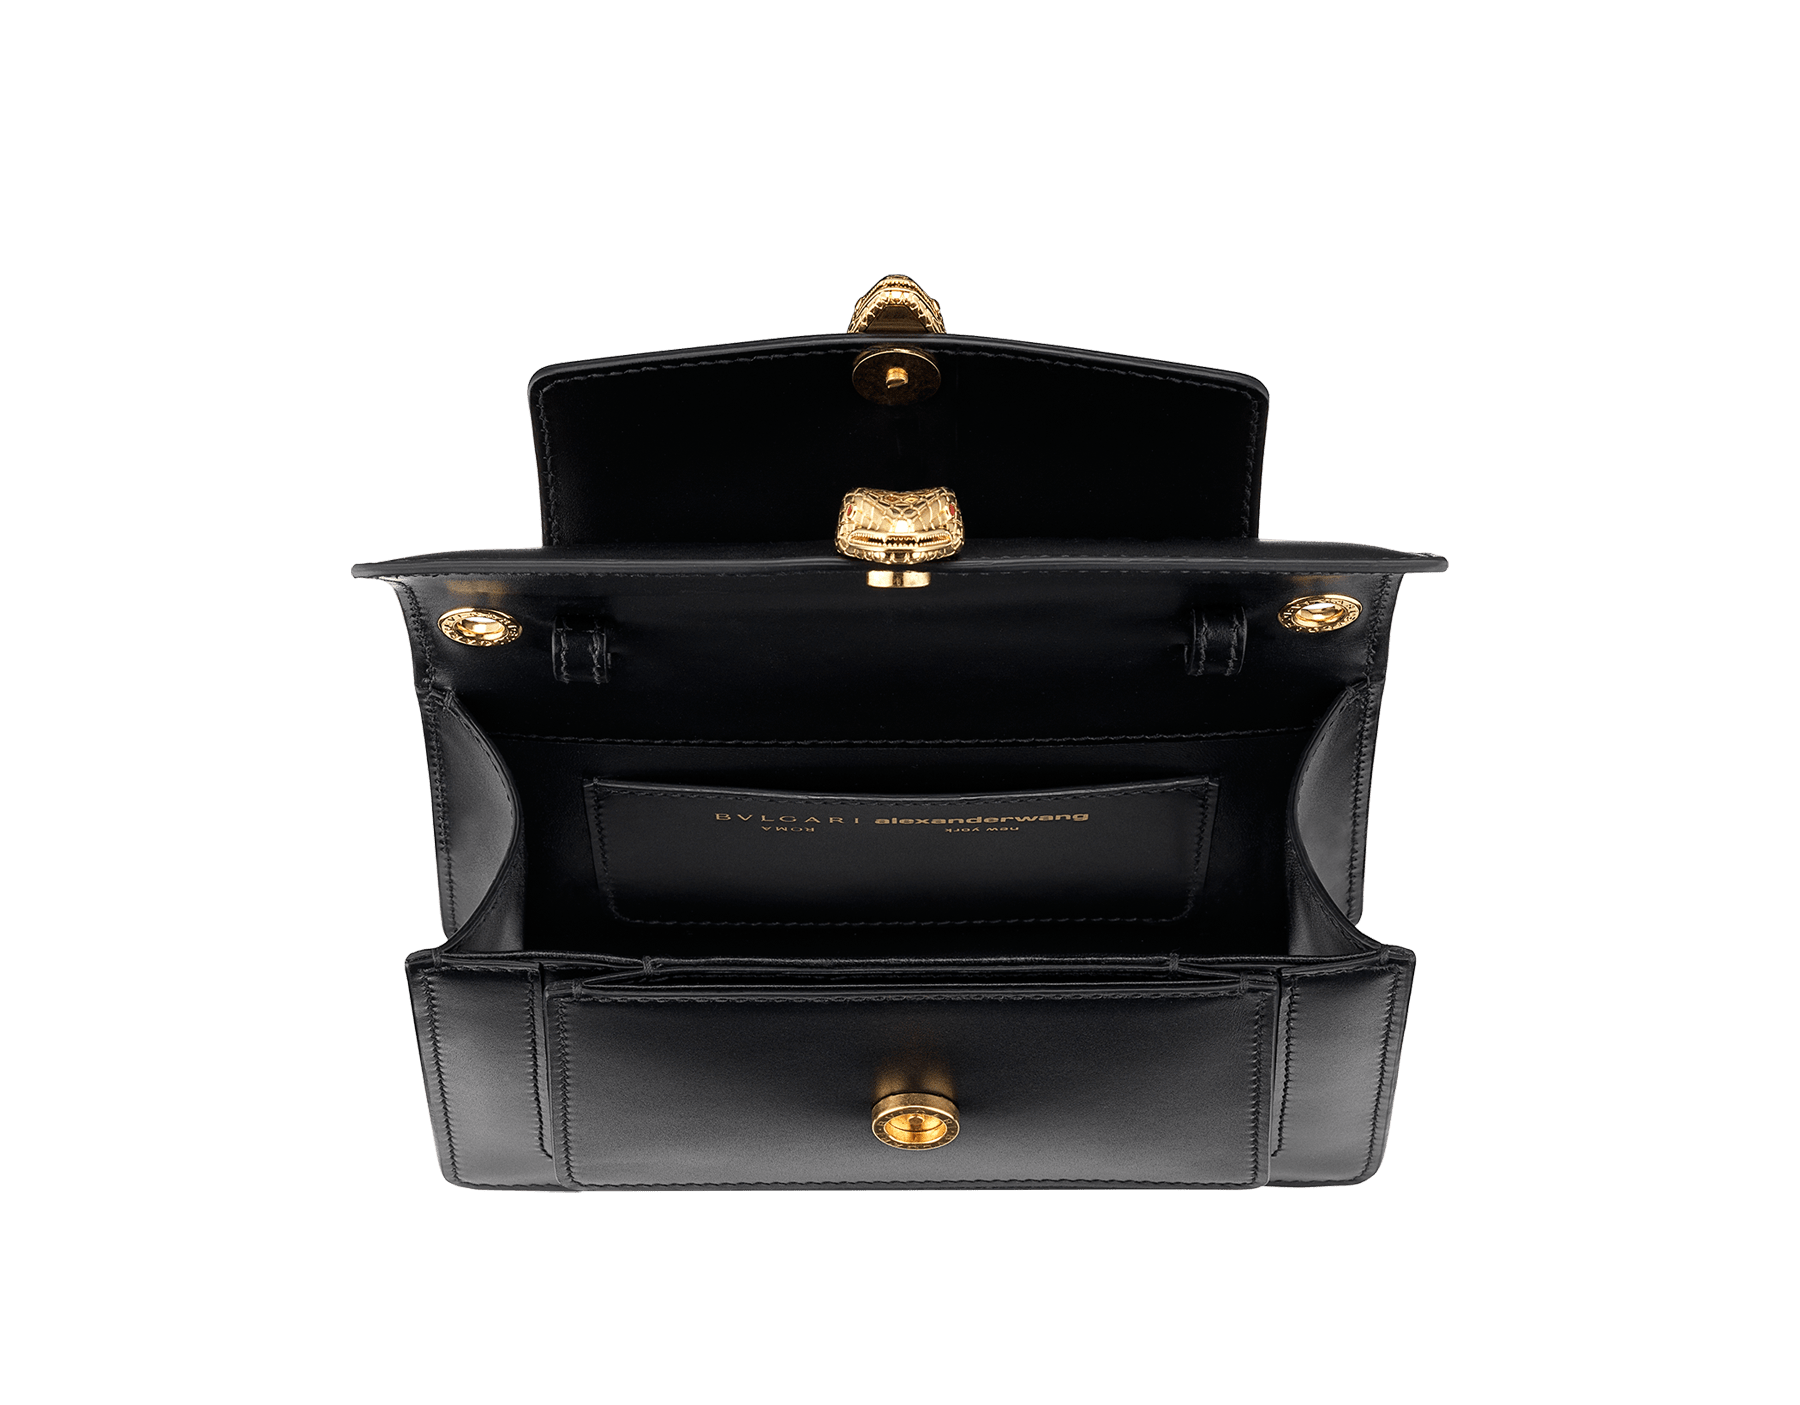 Alexander Wang x Bvlgari belt bag in smooth black calf leather. New double Serpenti head closure in antique gold plated brass with tempting red enamel eyes. Limited edition. 288737 image 7